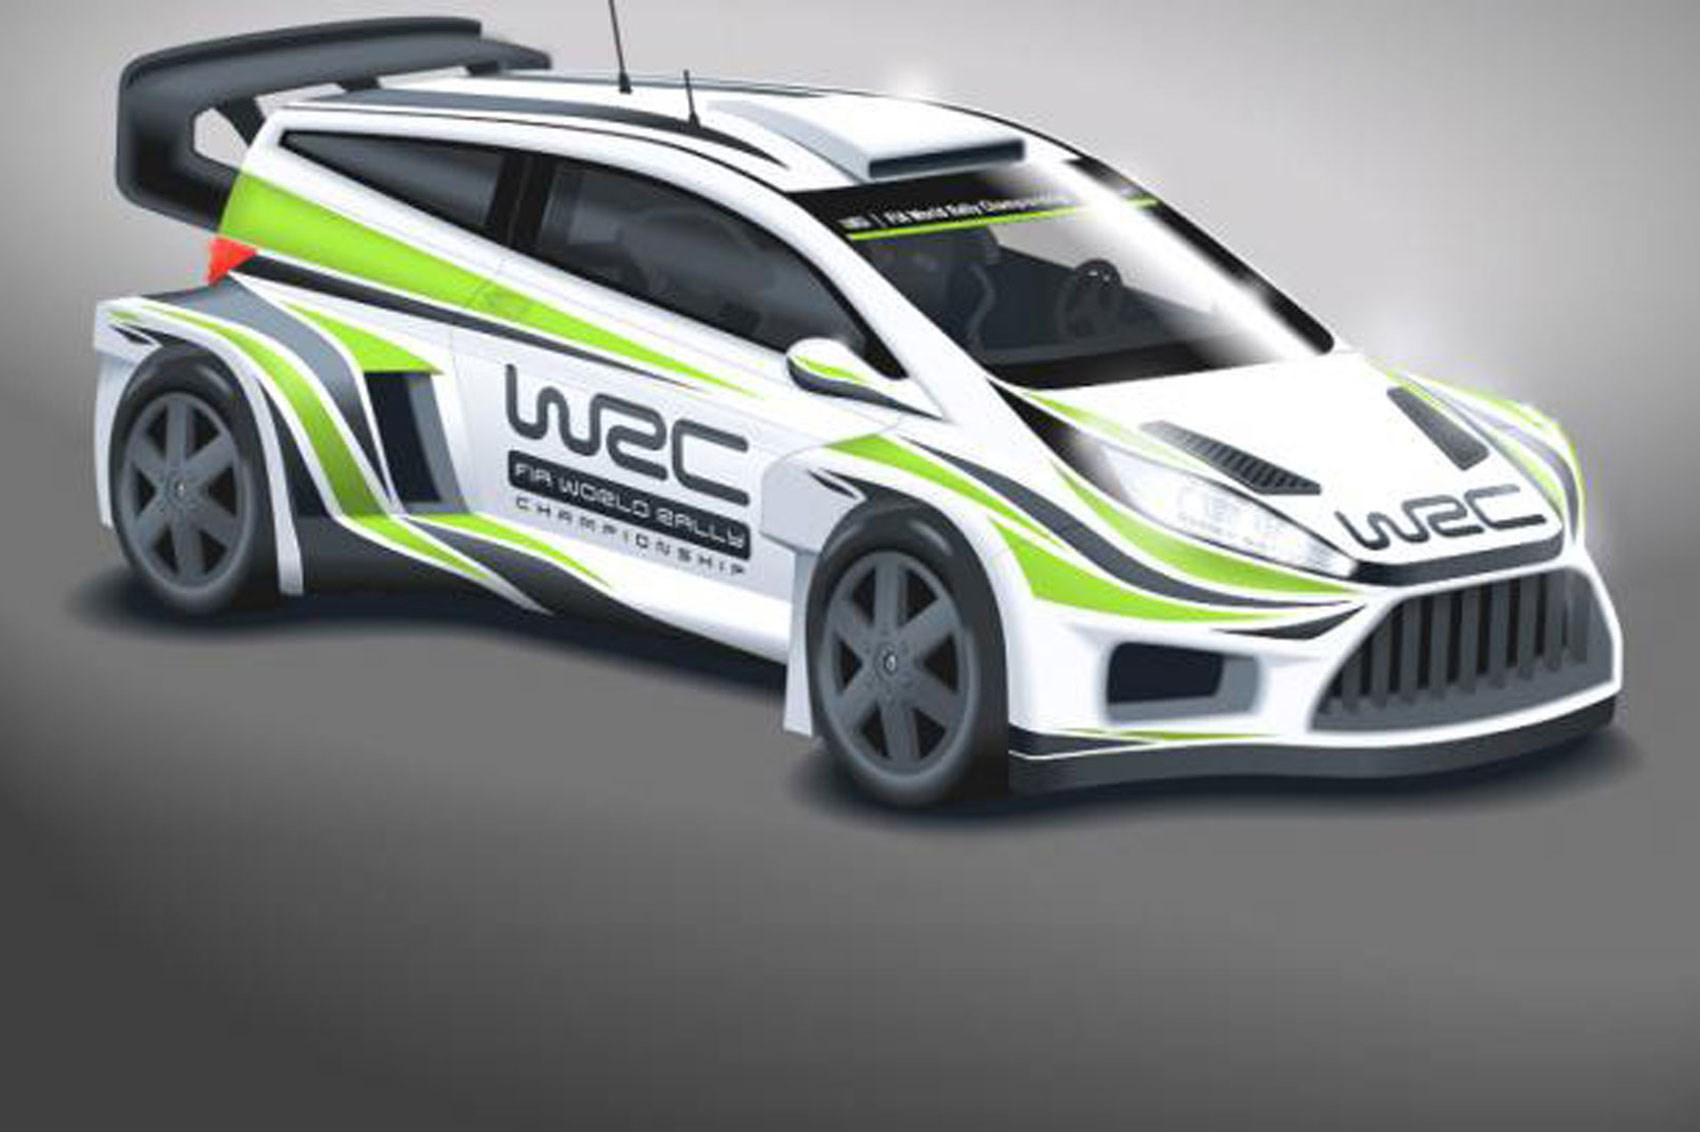 Ultrablogus  Nice Wild New Look For Wrc Cars In  By Car Magazine With Interesting Wrc Cars Will Get Wider Bodies Bigger Wings And More Power For  With Delightful Interior Kombi Also Custom El Camino Interior In Addition Modified Swift Interior And Vx Commodore Interior As Well As Custom Luxury Car Interior Additionally  Plymouth Interior From Carmagazinecouk With Ultrablogus  Interesting Wild New Look For Wrc Cars In  By Car Magazine With Delightful Wrc Cars Will Get Wider Bodies Bigger Wings And More Power For  And Nice Interior Kombi Also Custom El Camino Interior In Addition Modified Swift Interior From Carmagazinecouk